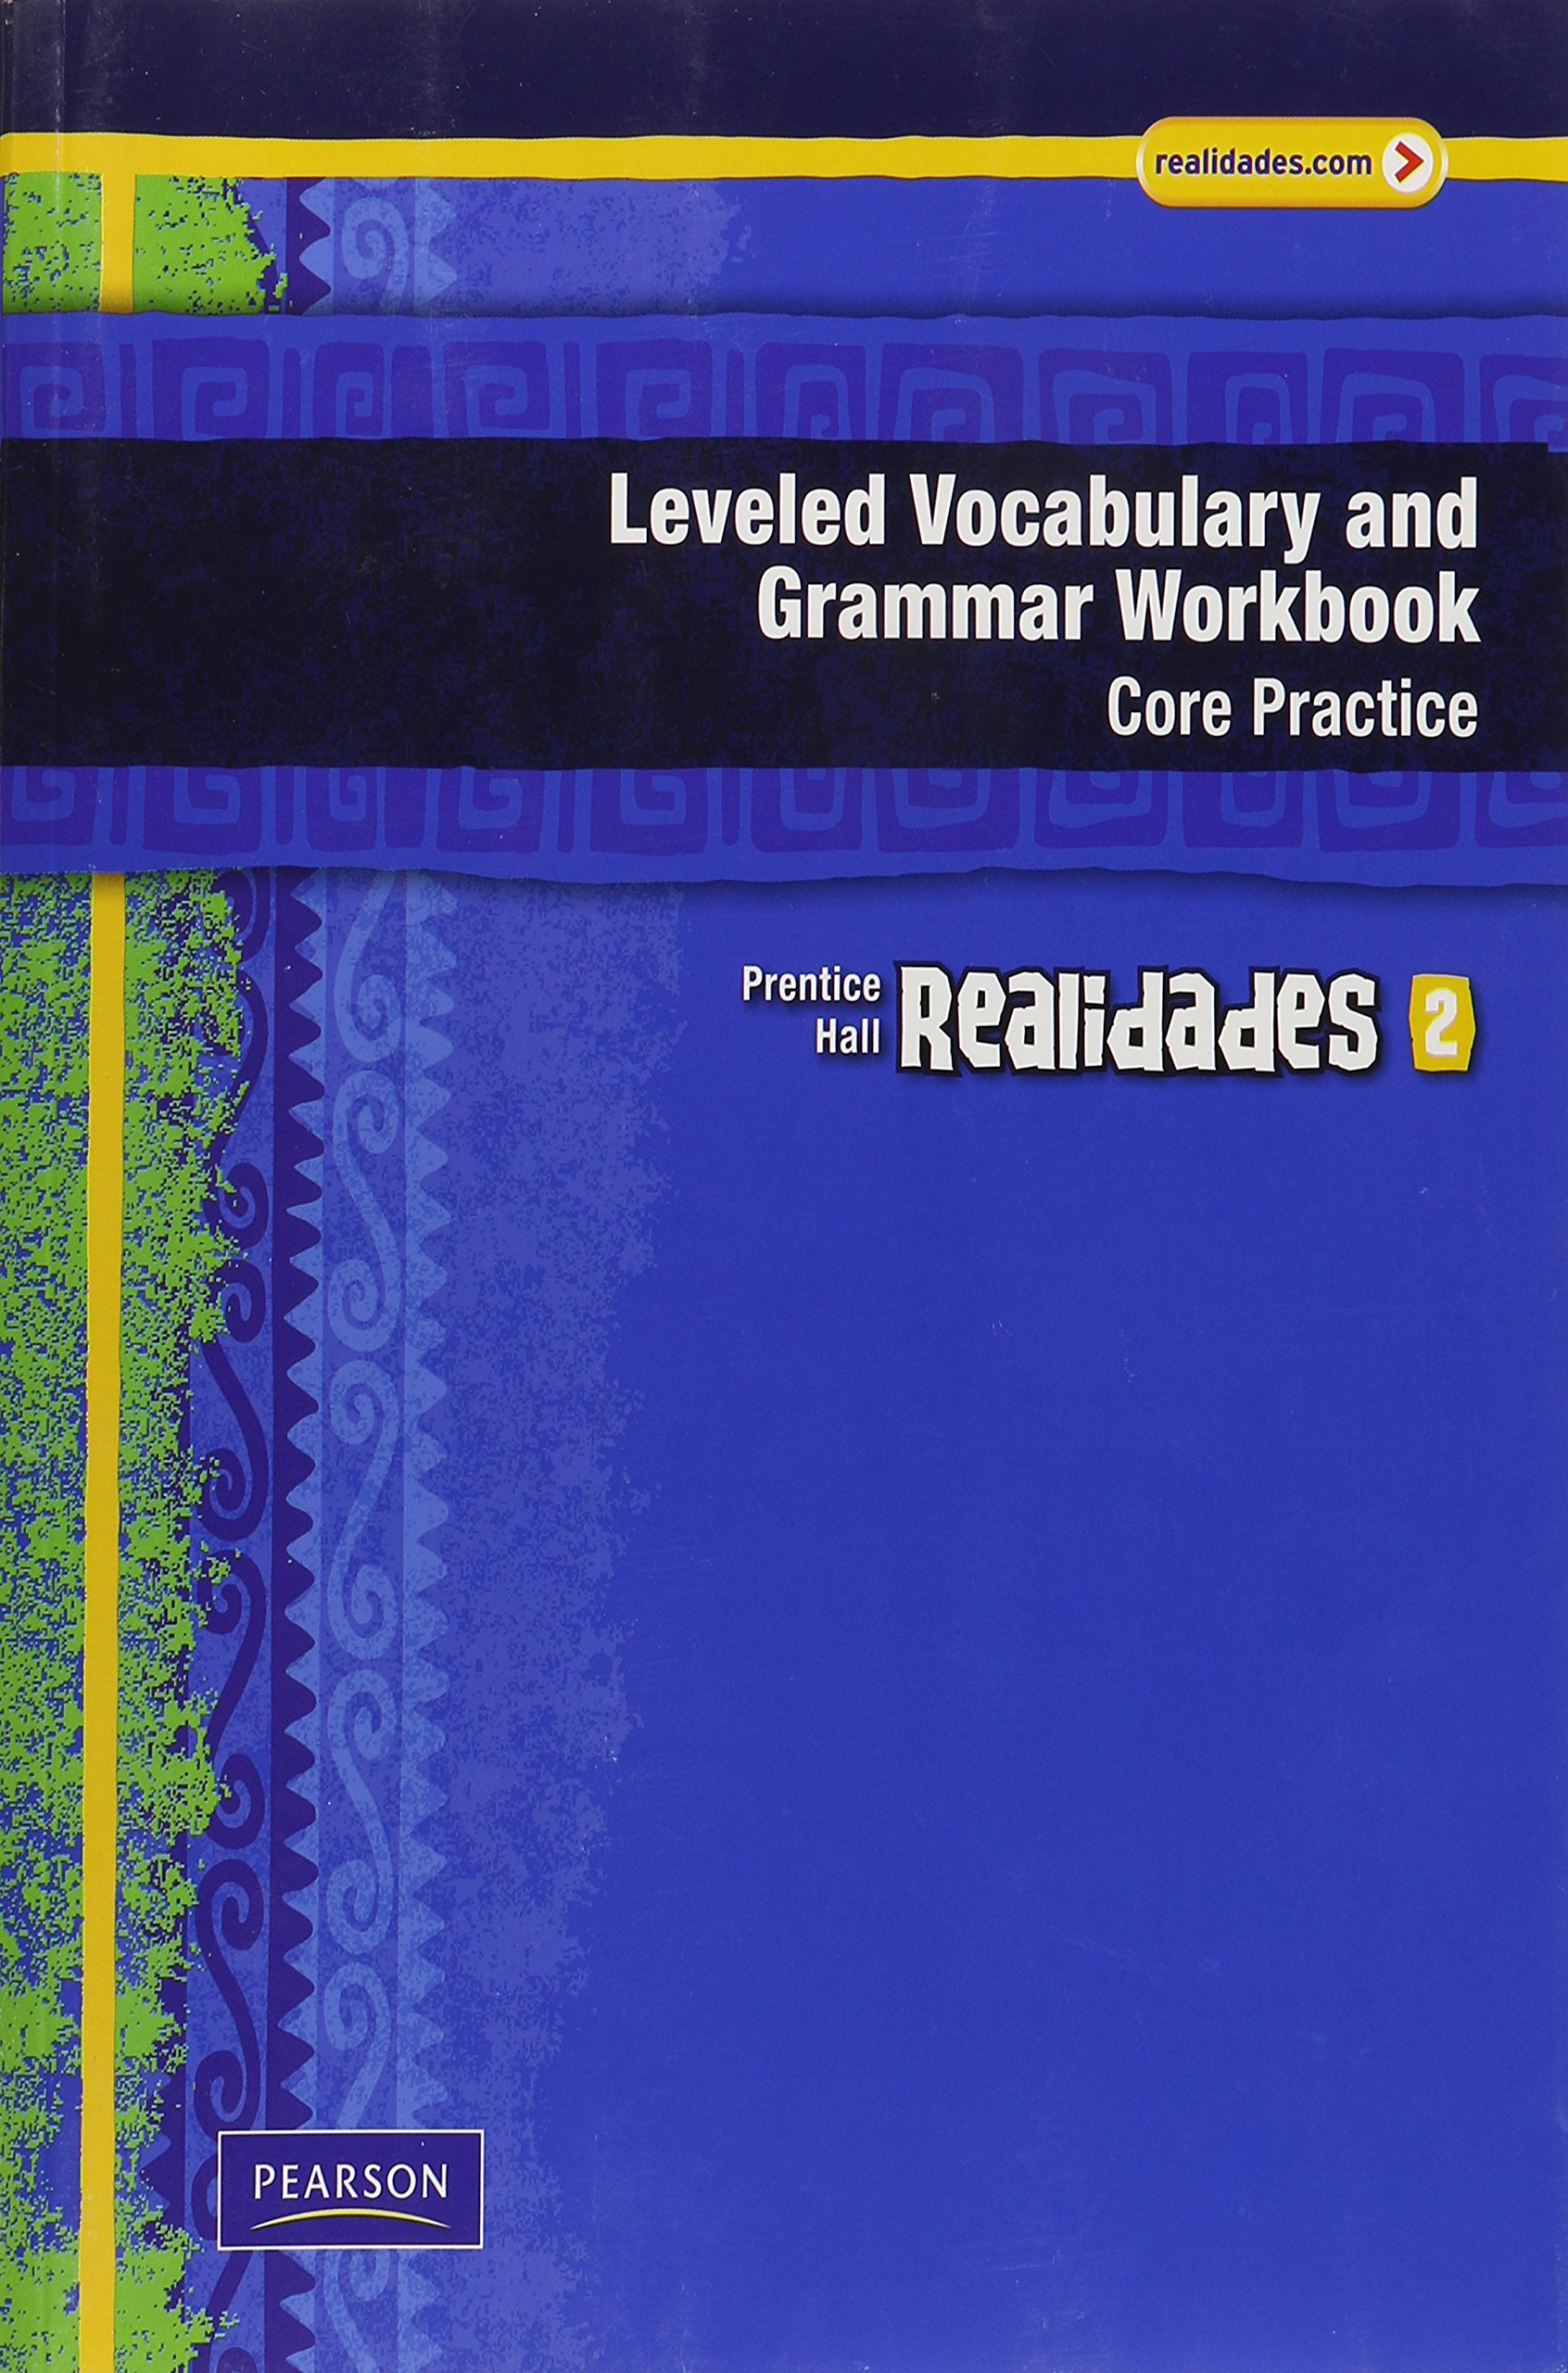 REALIDADES LEVELED VOCABULARY AND GRMR WORKBOOK (CORE & GUIDED PRACTICE) LEVEL 2 COPYRIGHT 2011